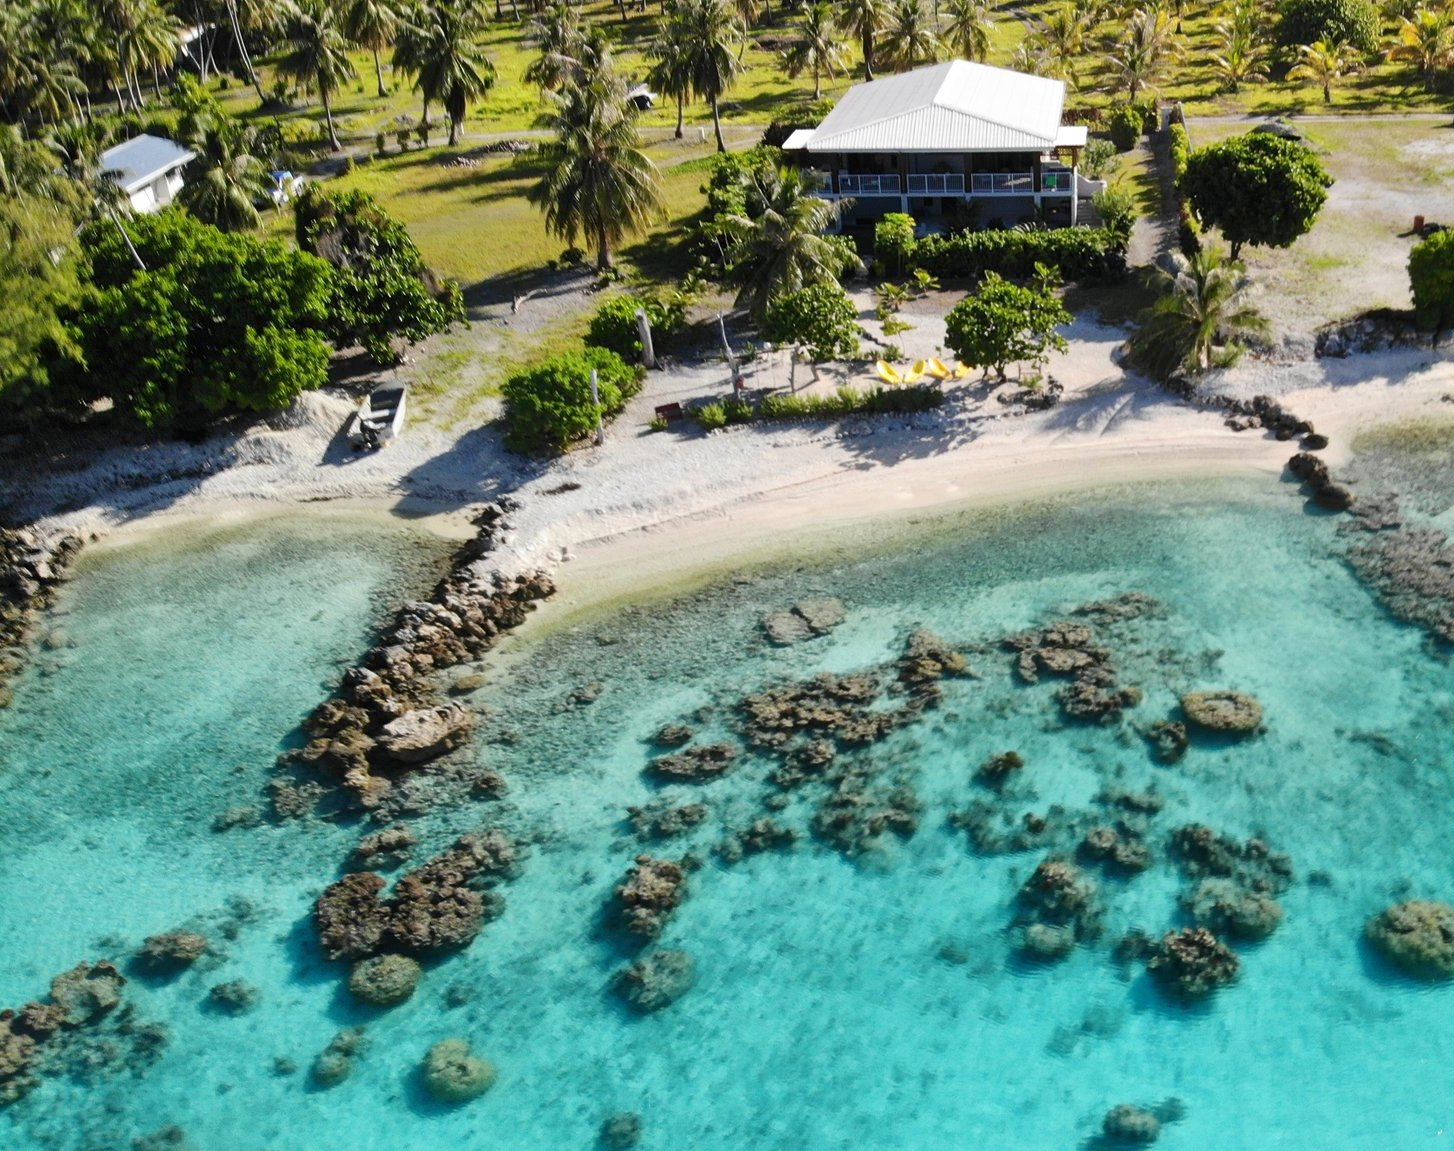 https://tahititourisme.ch/wp-content/uploads/2018/04/868ad0534a8573712c710be7fb1652860d1fb125c50d7e91aa4b71c42f40d468.jpg